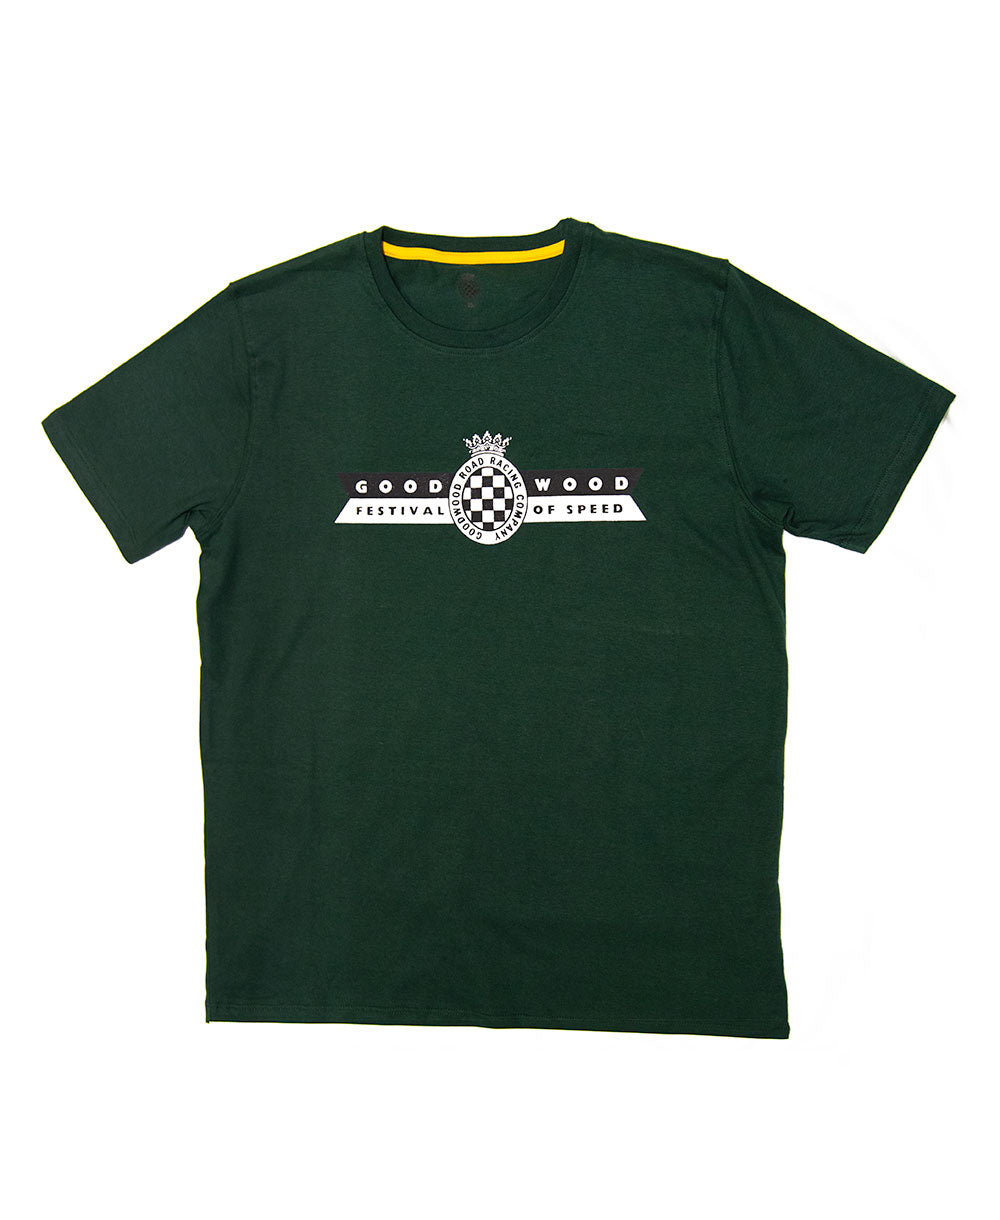 Festival of Speed Racing Colours T-Shirt Green and Yellow Men's